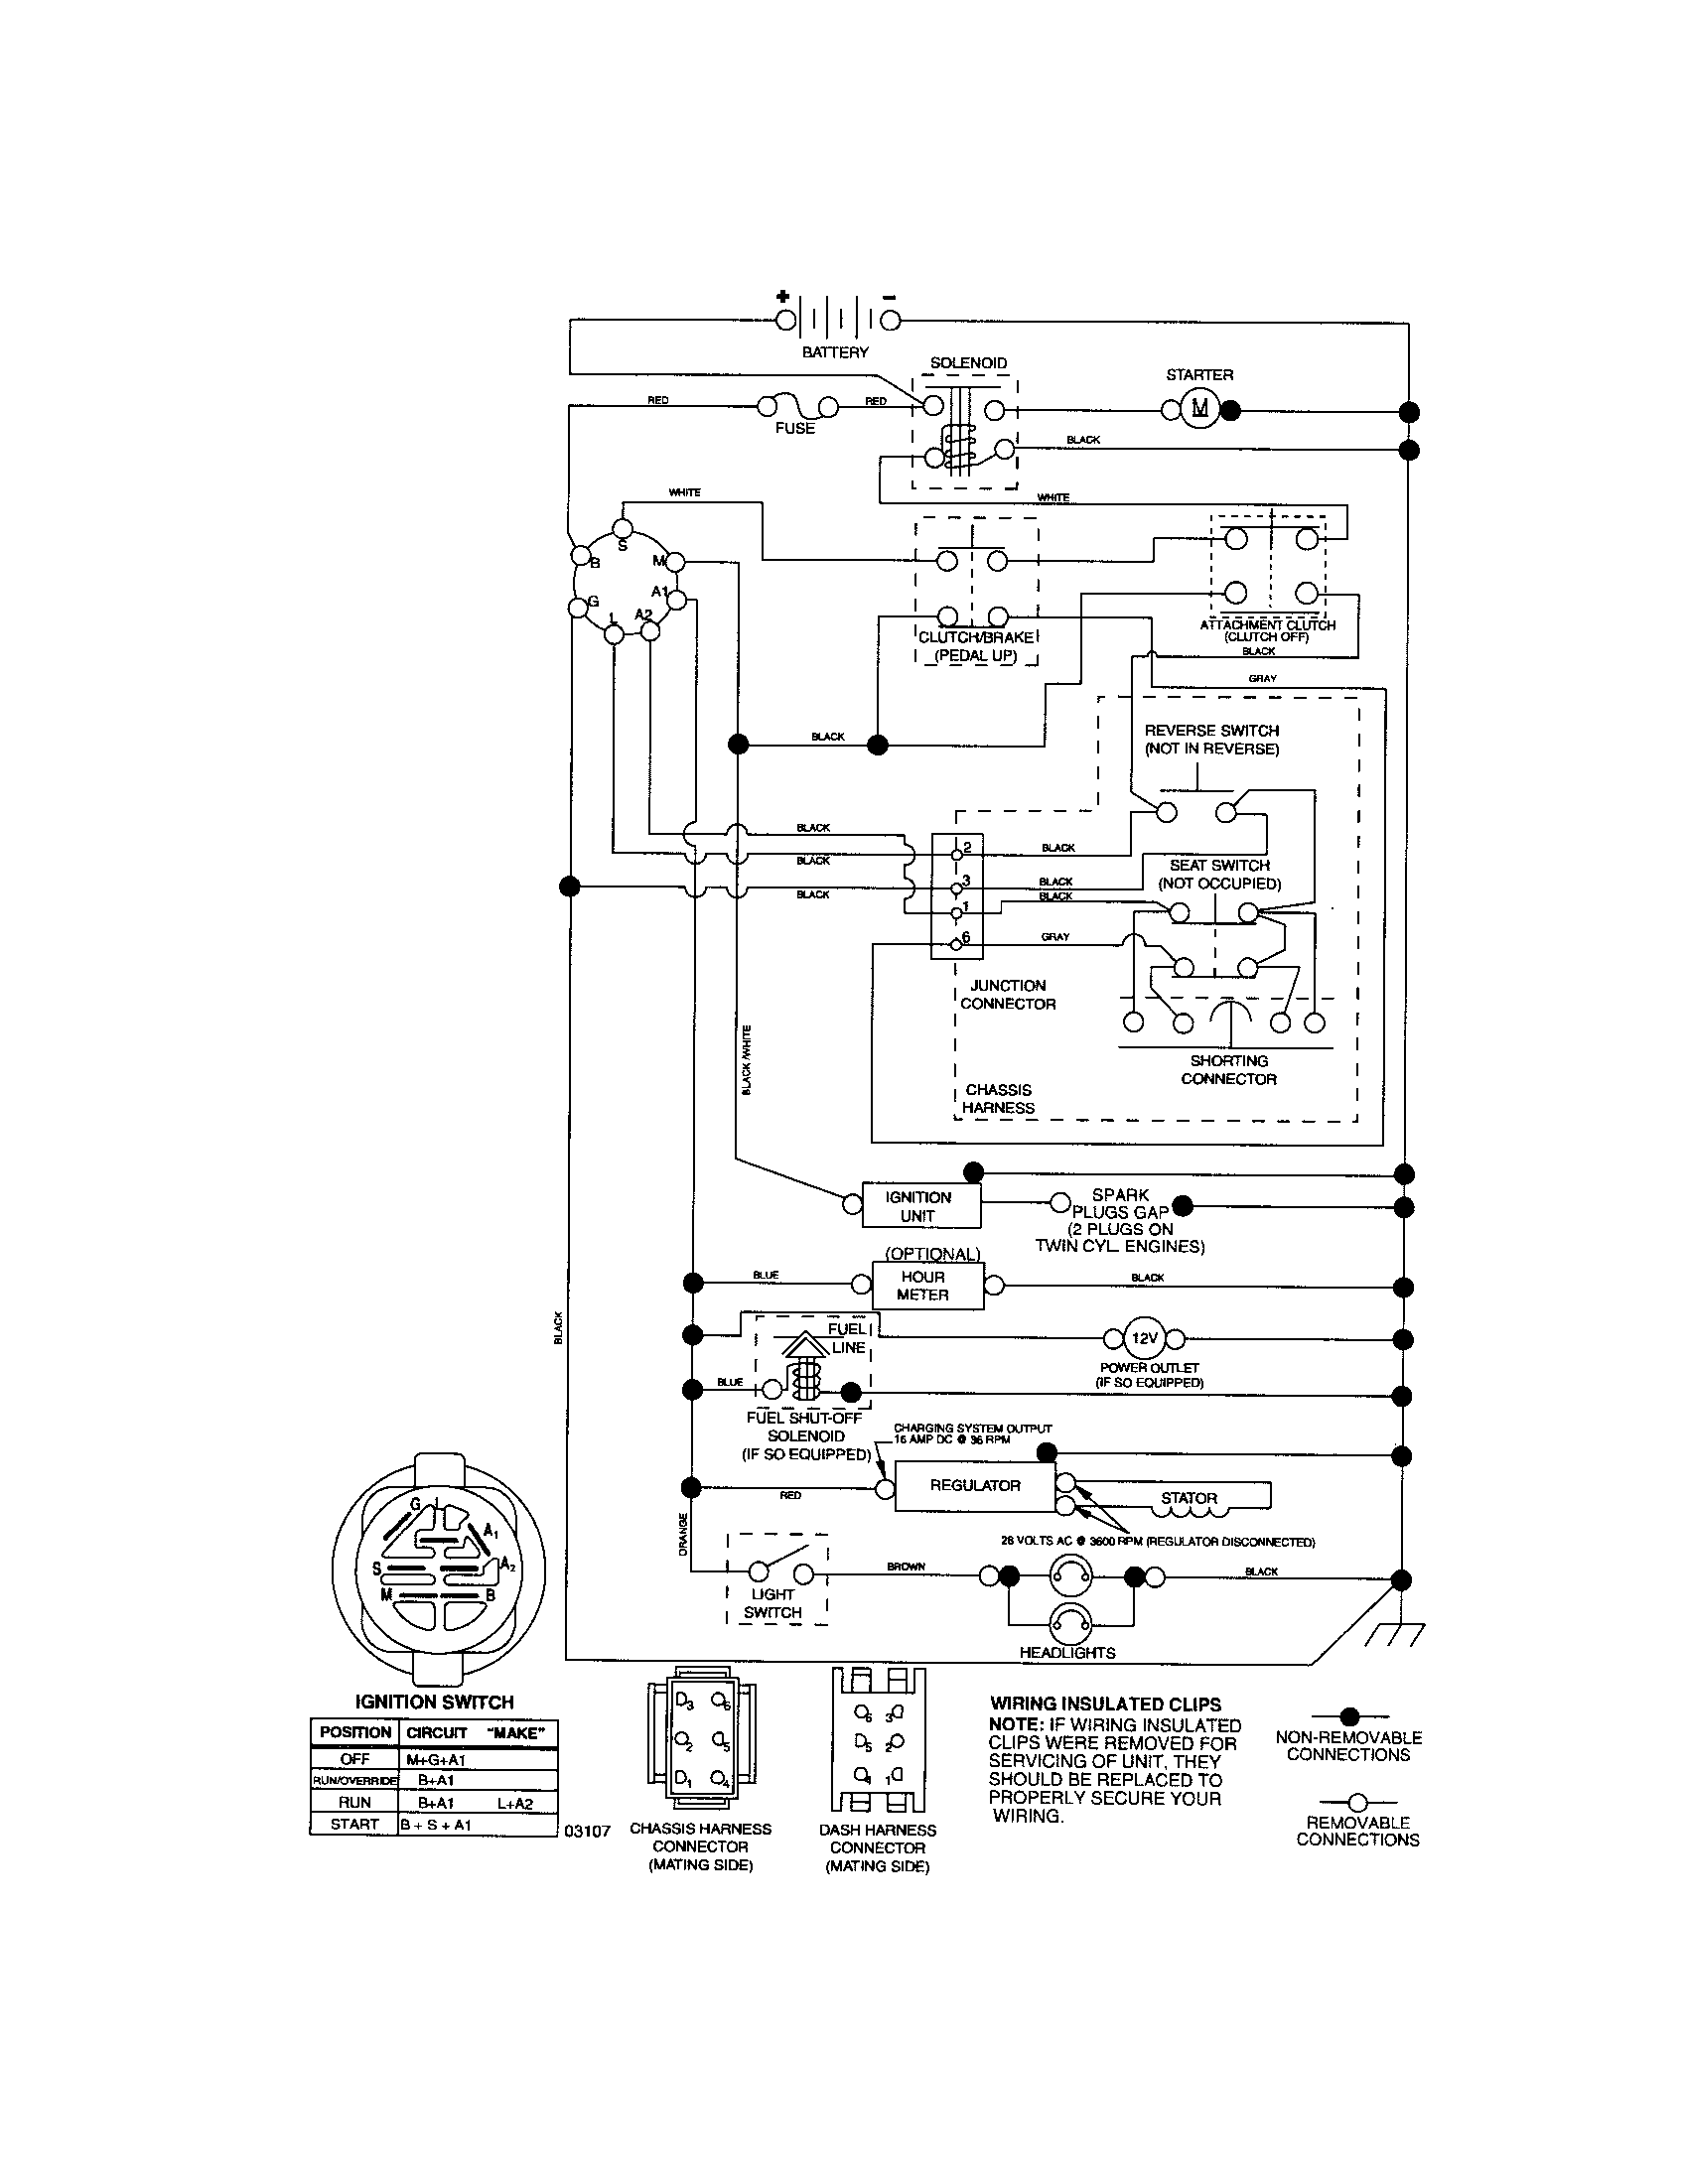 6af5f1447fd13c8443376822ddc1e105 craftsman riding mower electrical diagram wiring diagram